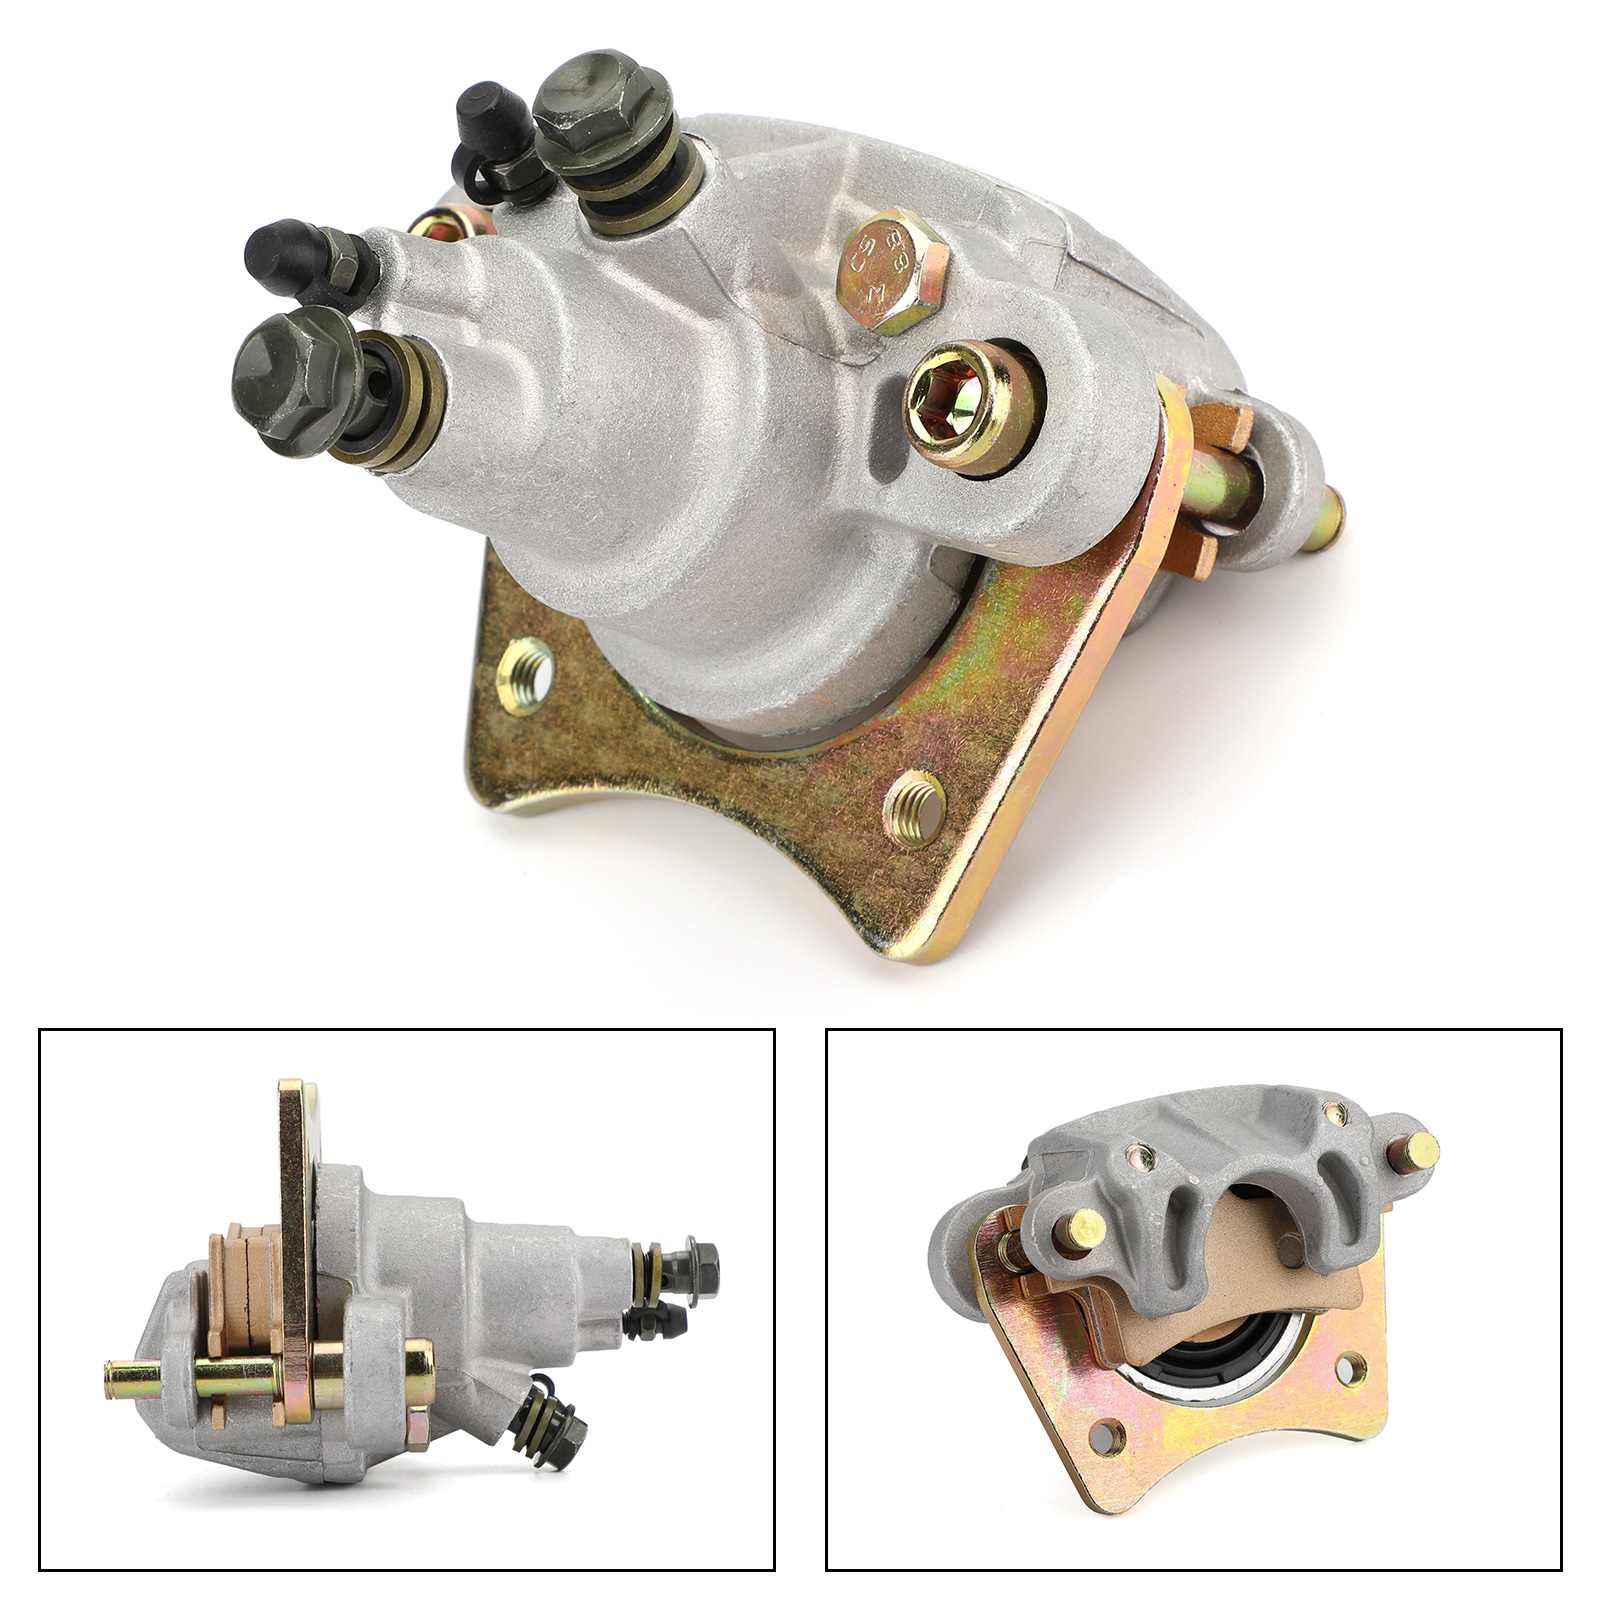 Rear Brake Caliper for Polaris Sportsman Forest 800 6x6 2012-2014 with Pads